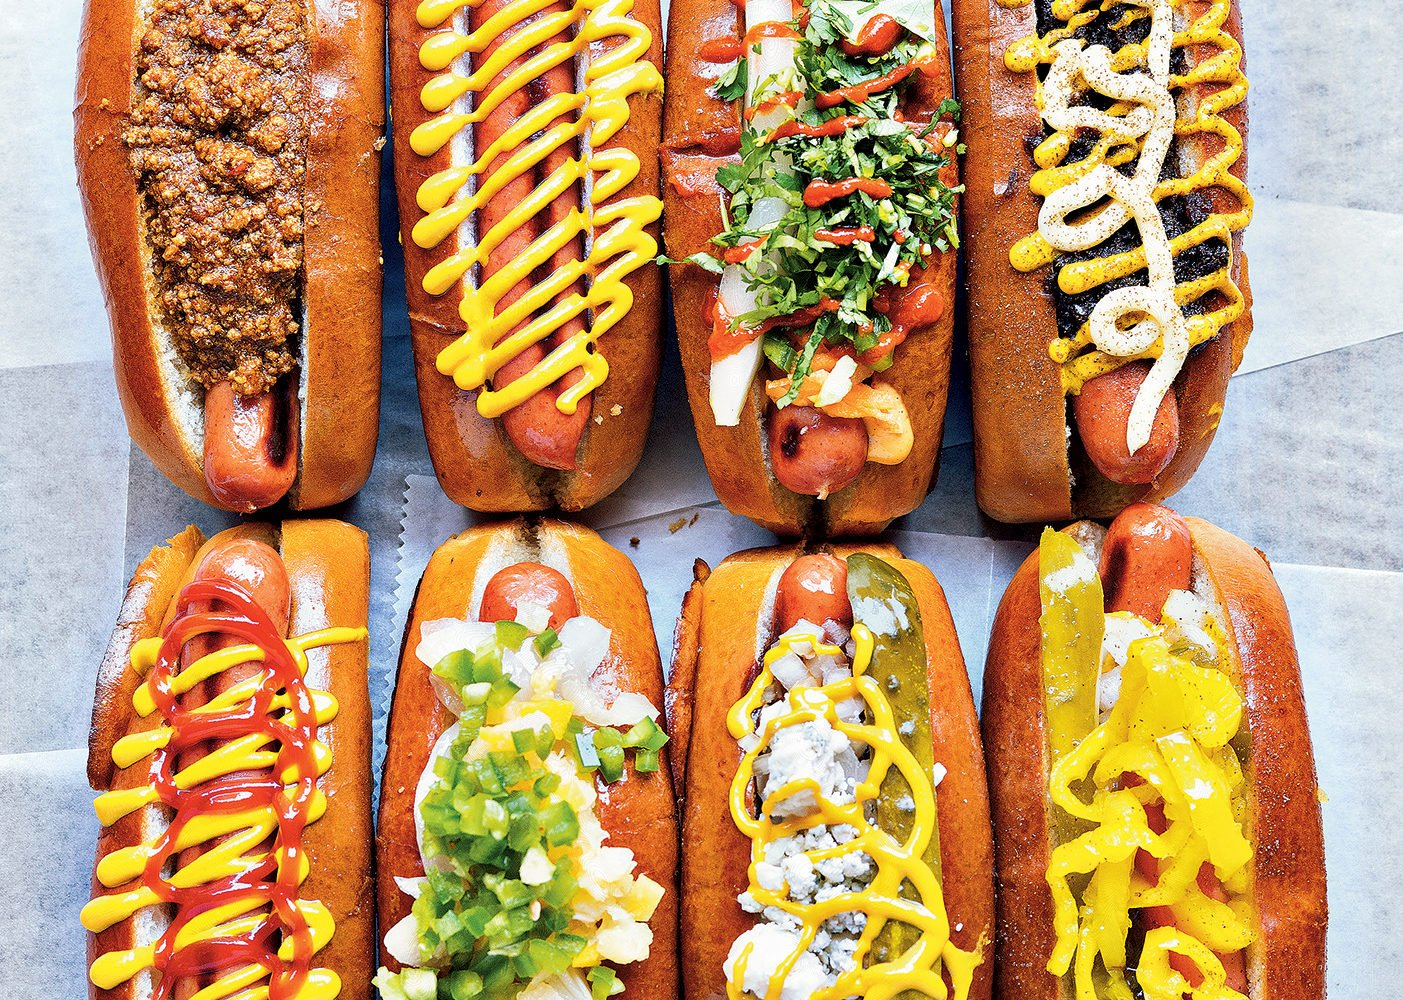 Franks at Haute Dogs and Fries. Photograph by Scott Suchman.